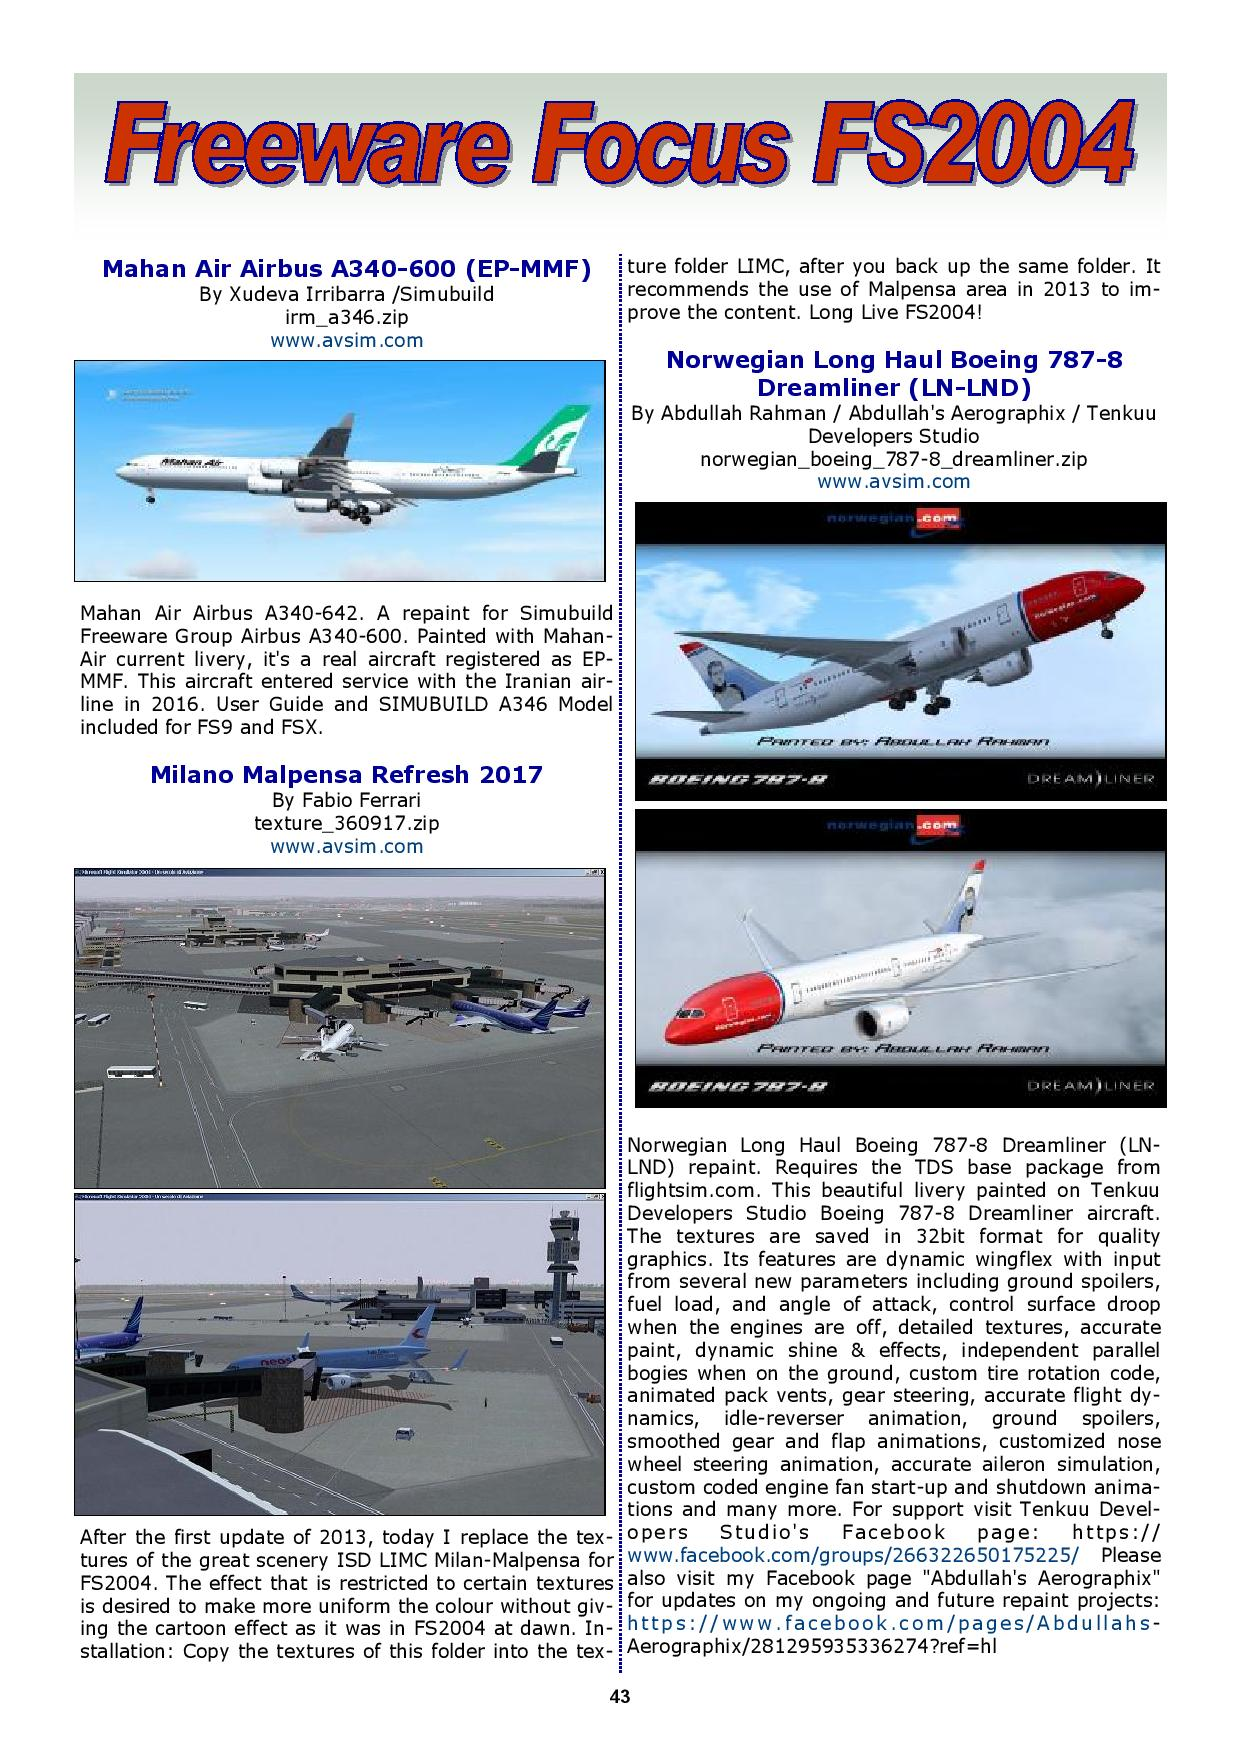 PC FLIGHT VOL. 20 ISSUE 1 MARCH 2017 - FREE